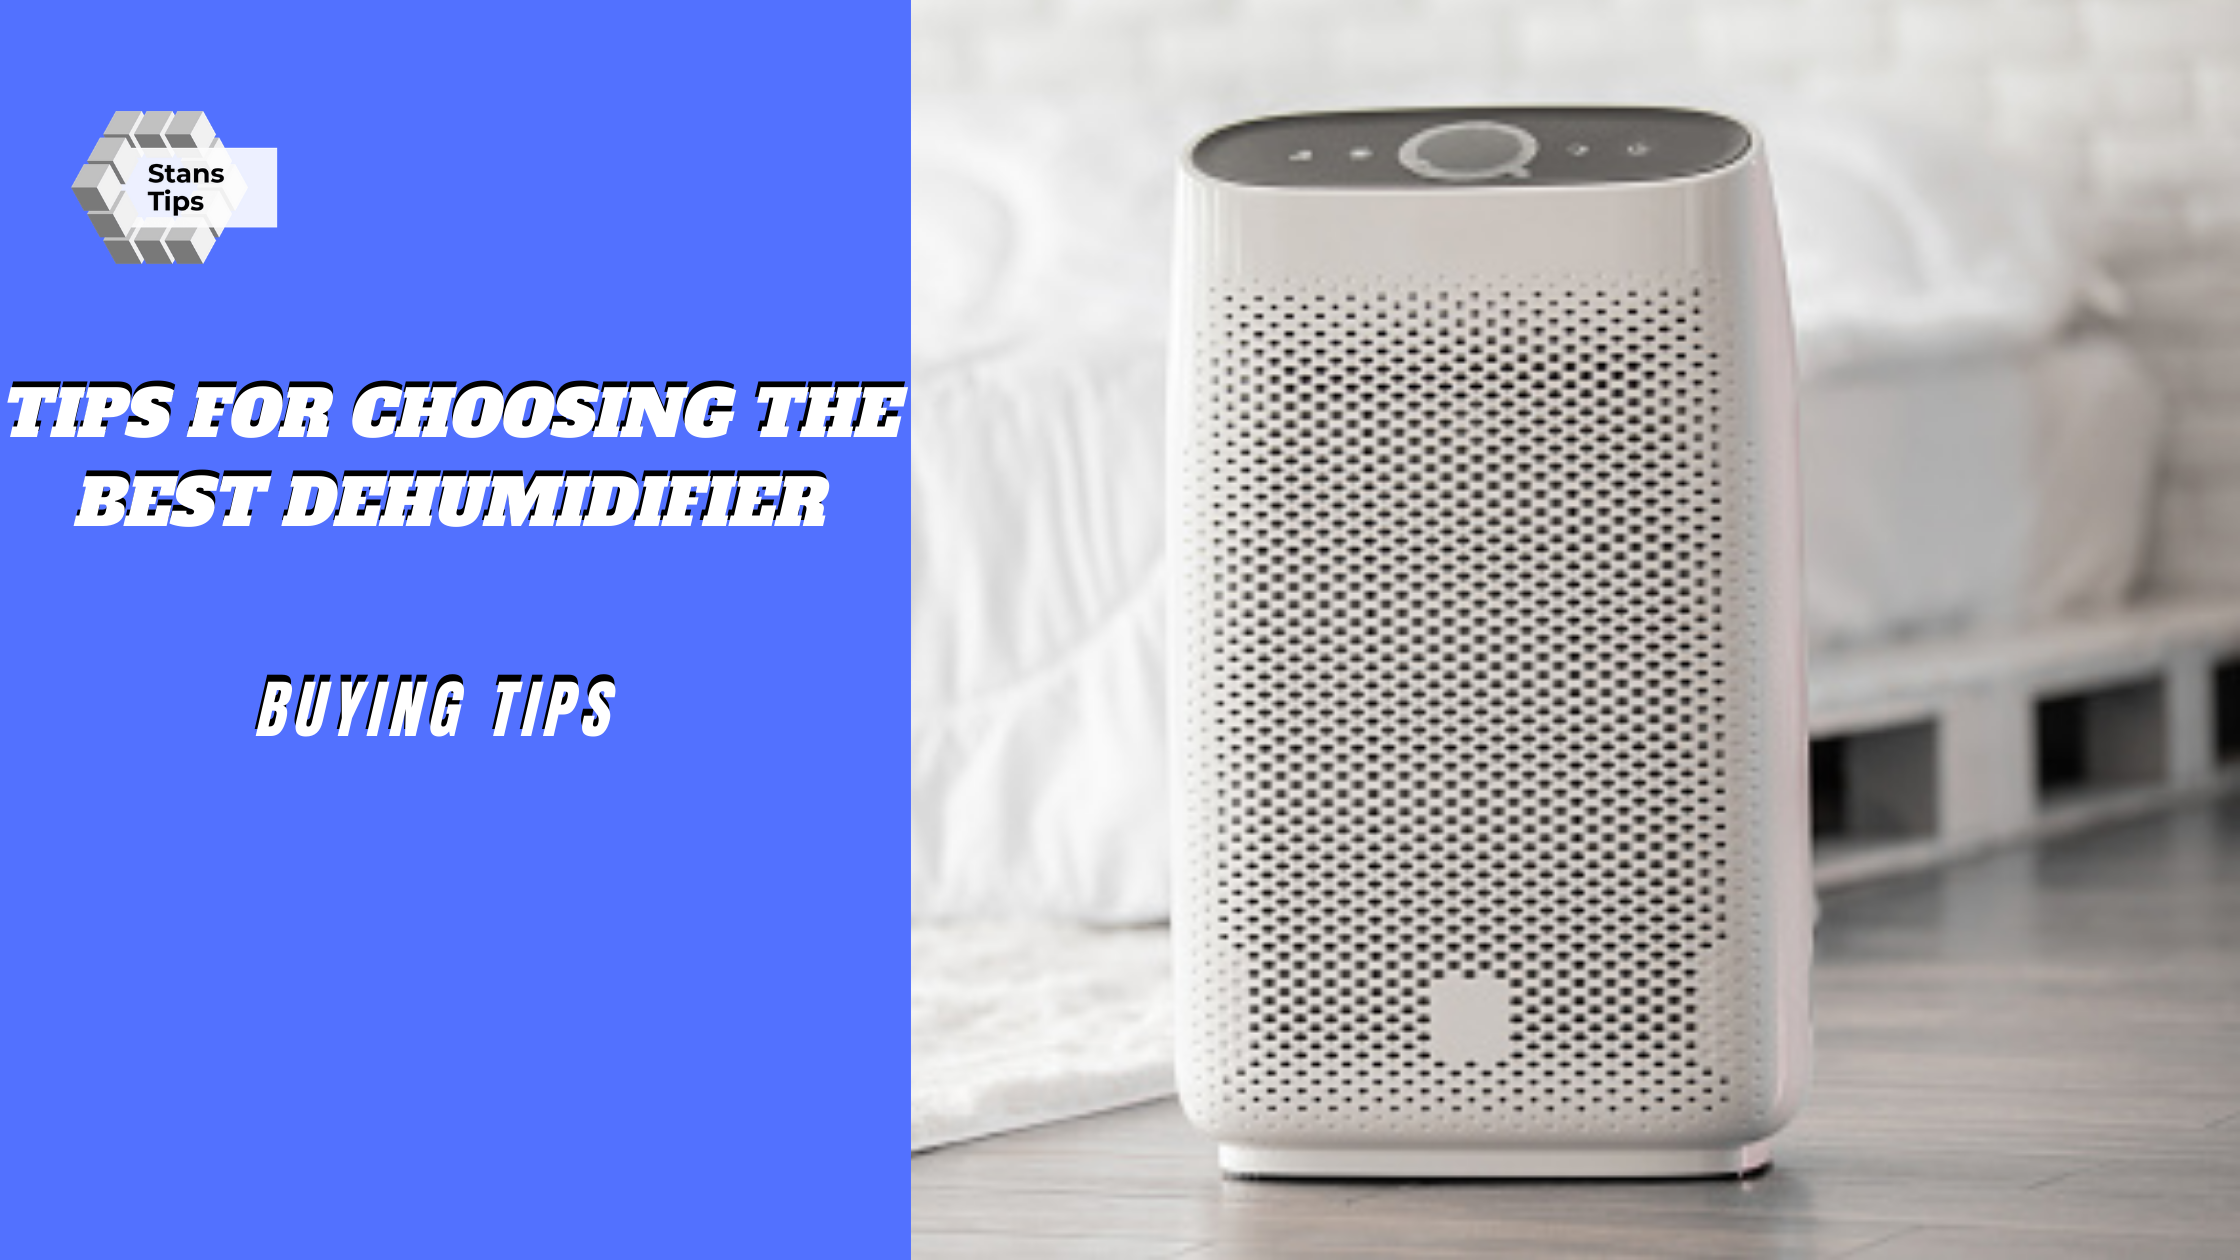 Tips for choosing the best dehumidifier in 2021